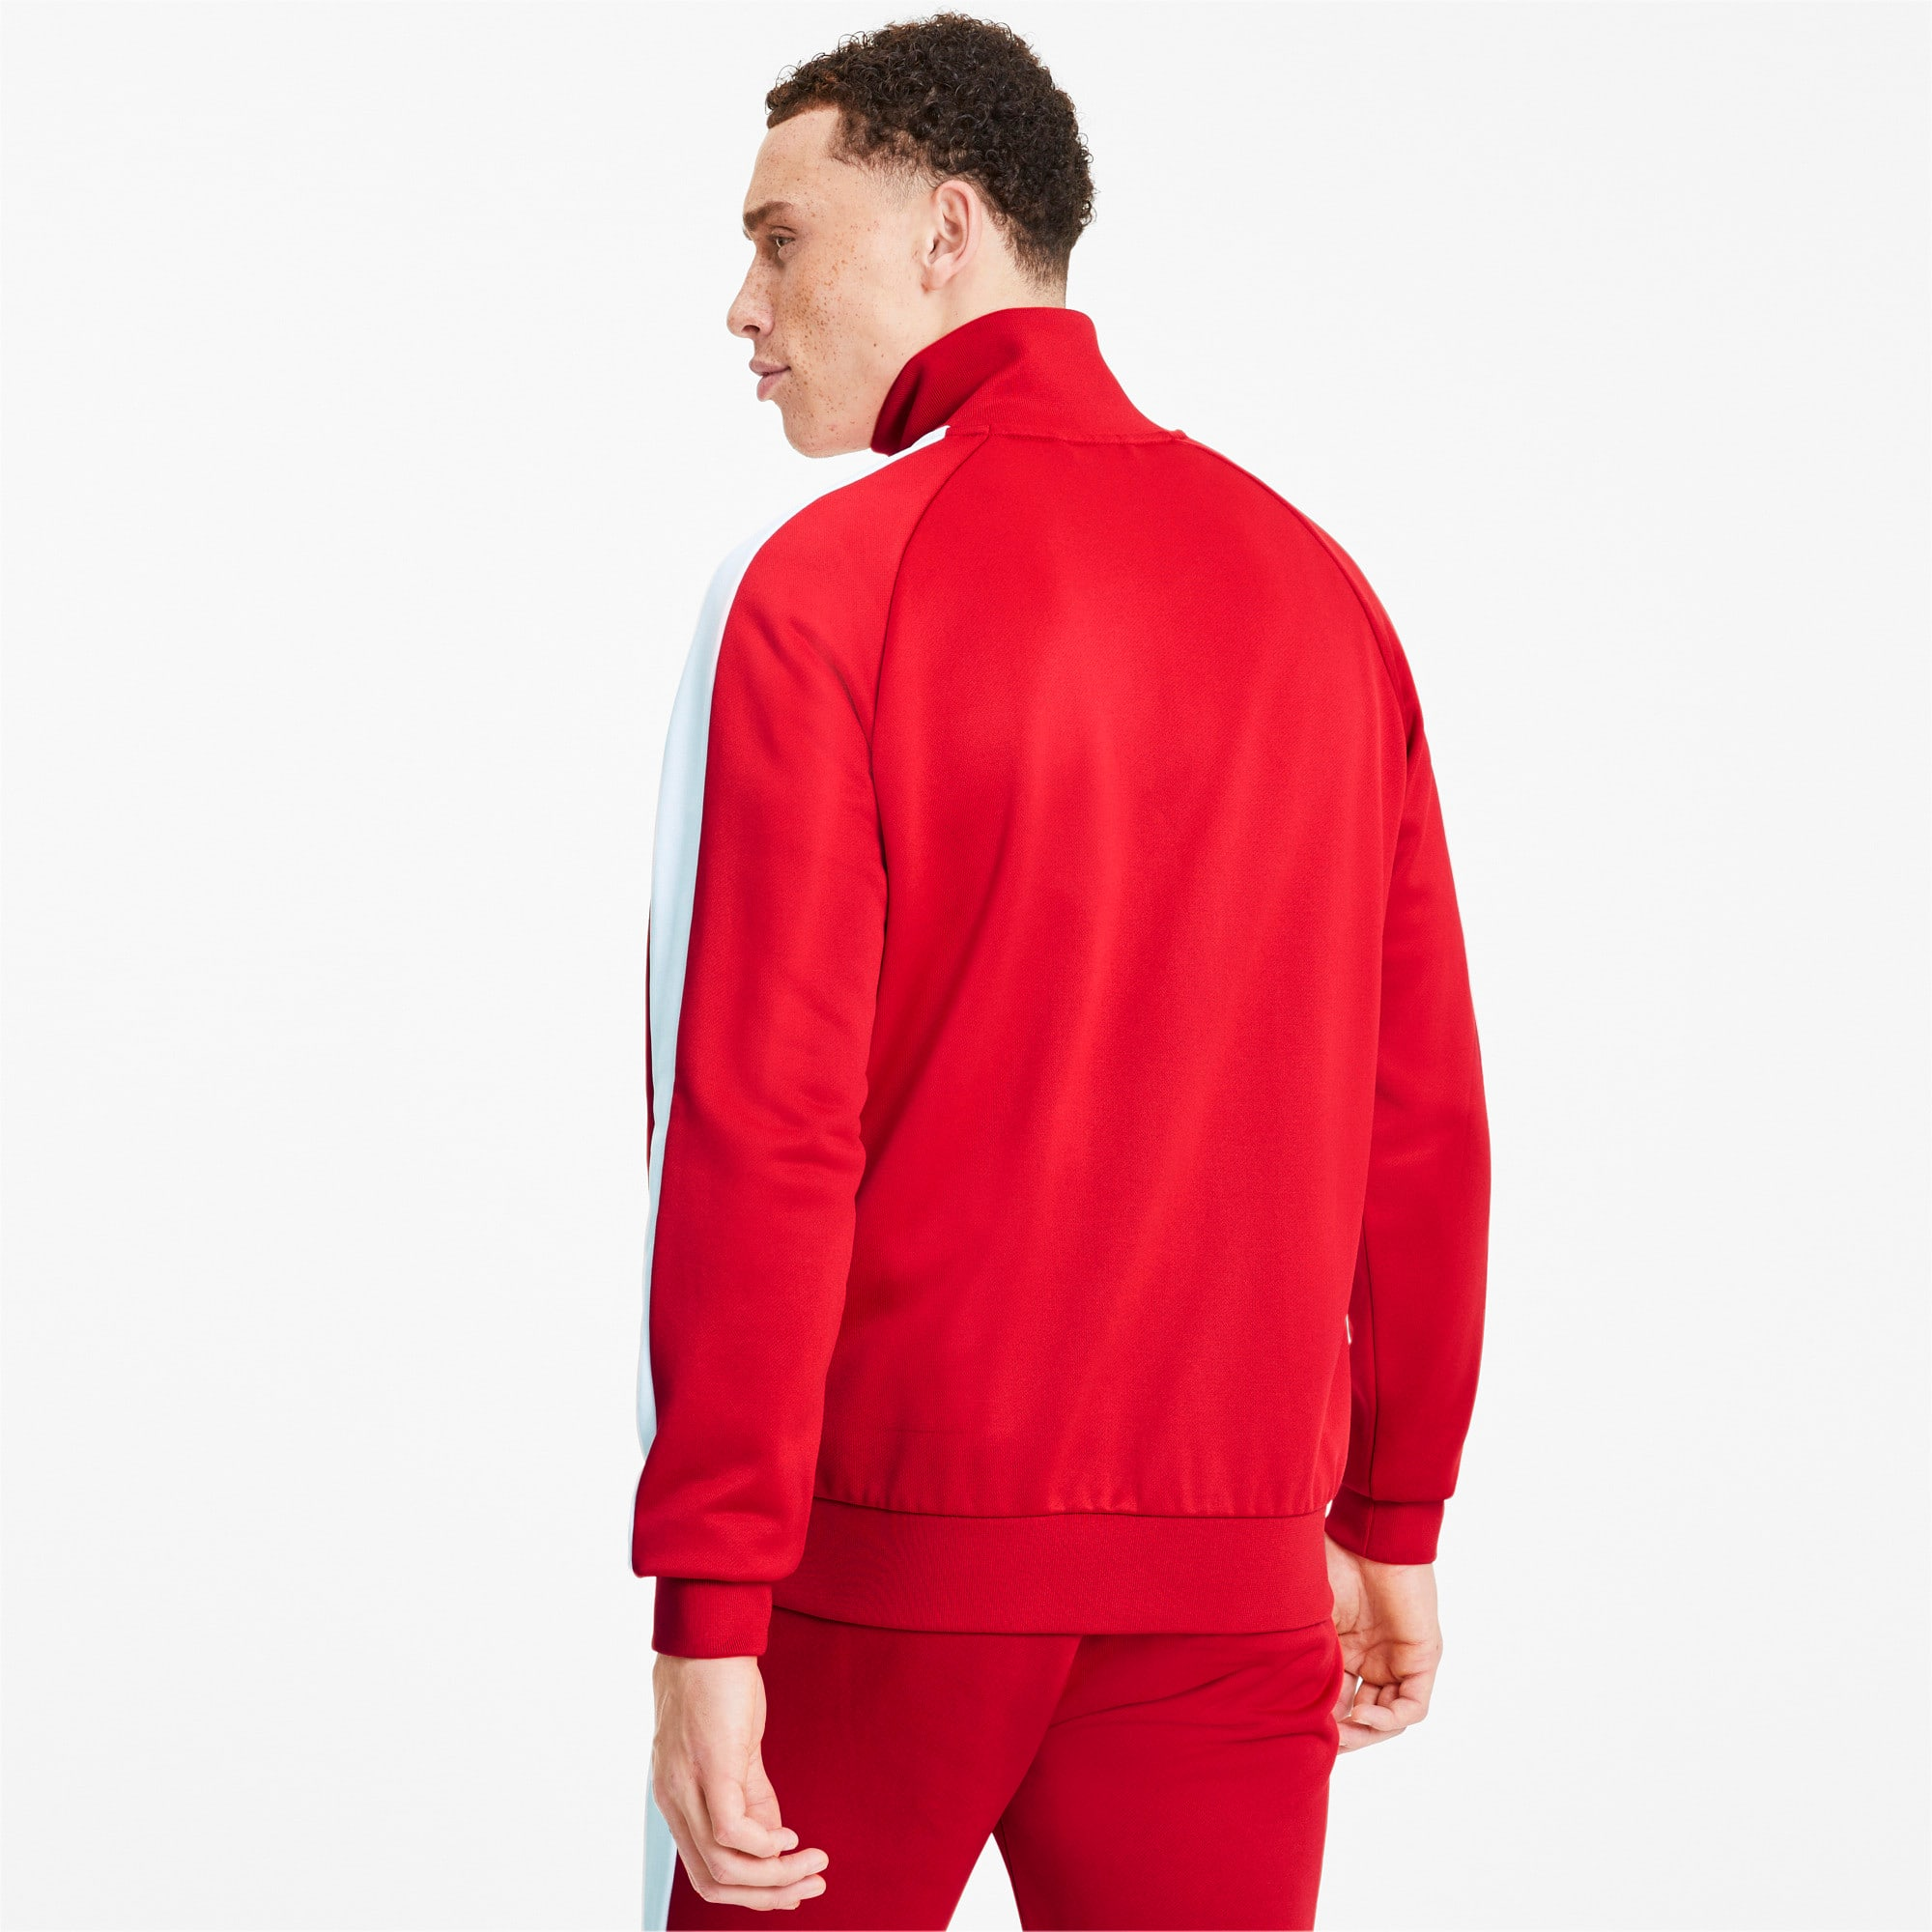 Thumbnail 2 of Iconic T7 Men's Track Jacket, High Risk Red, medium